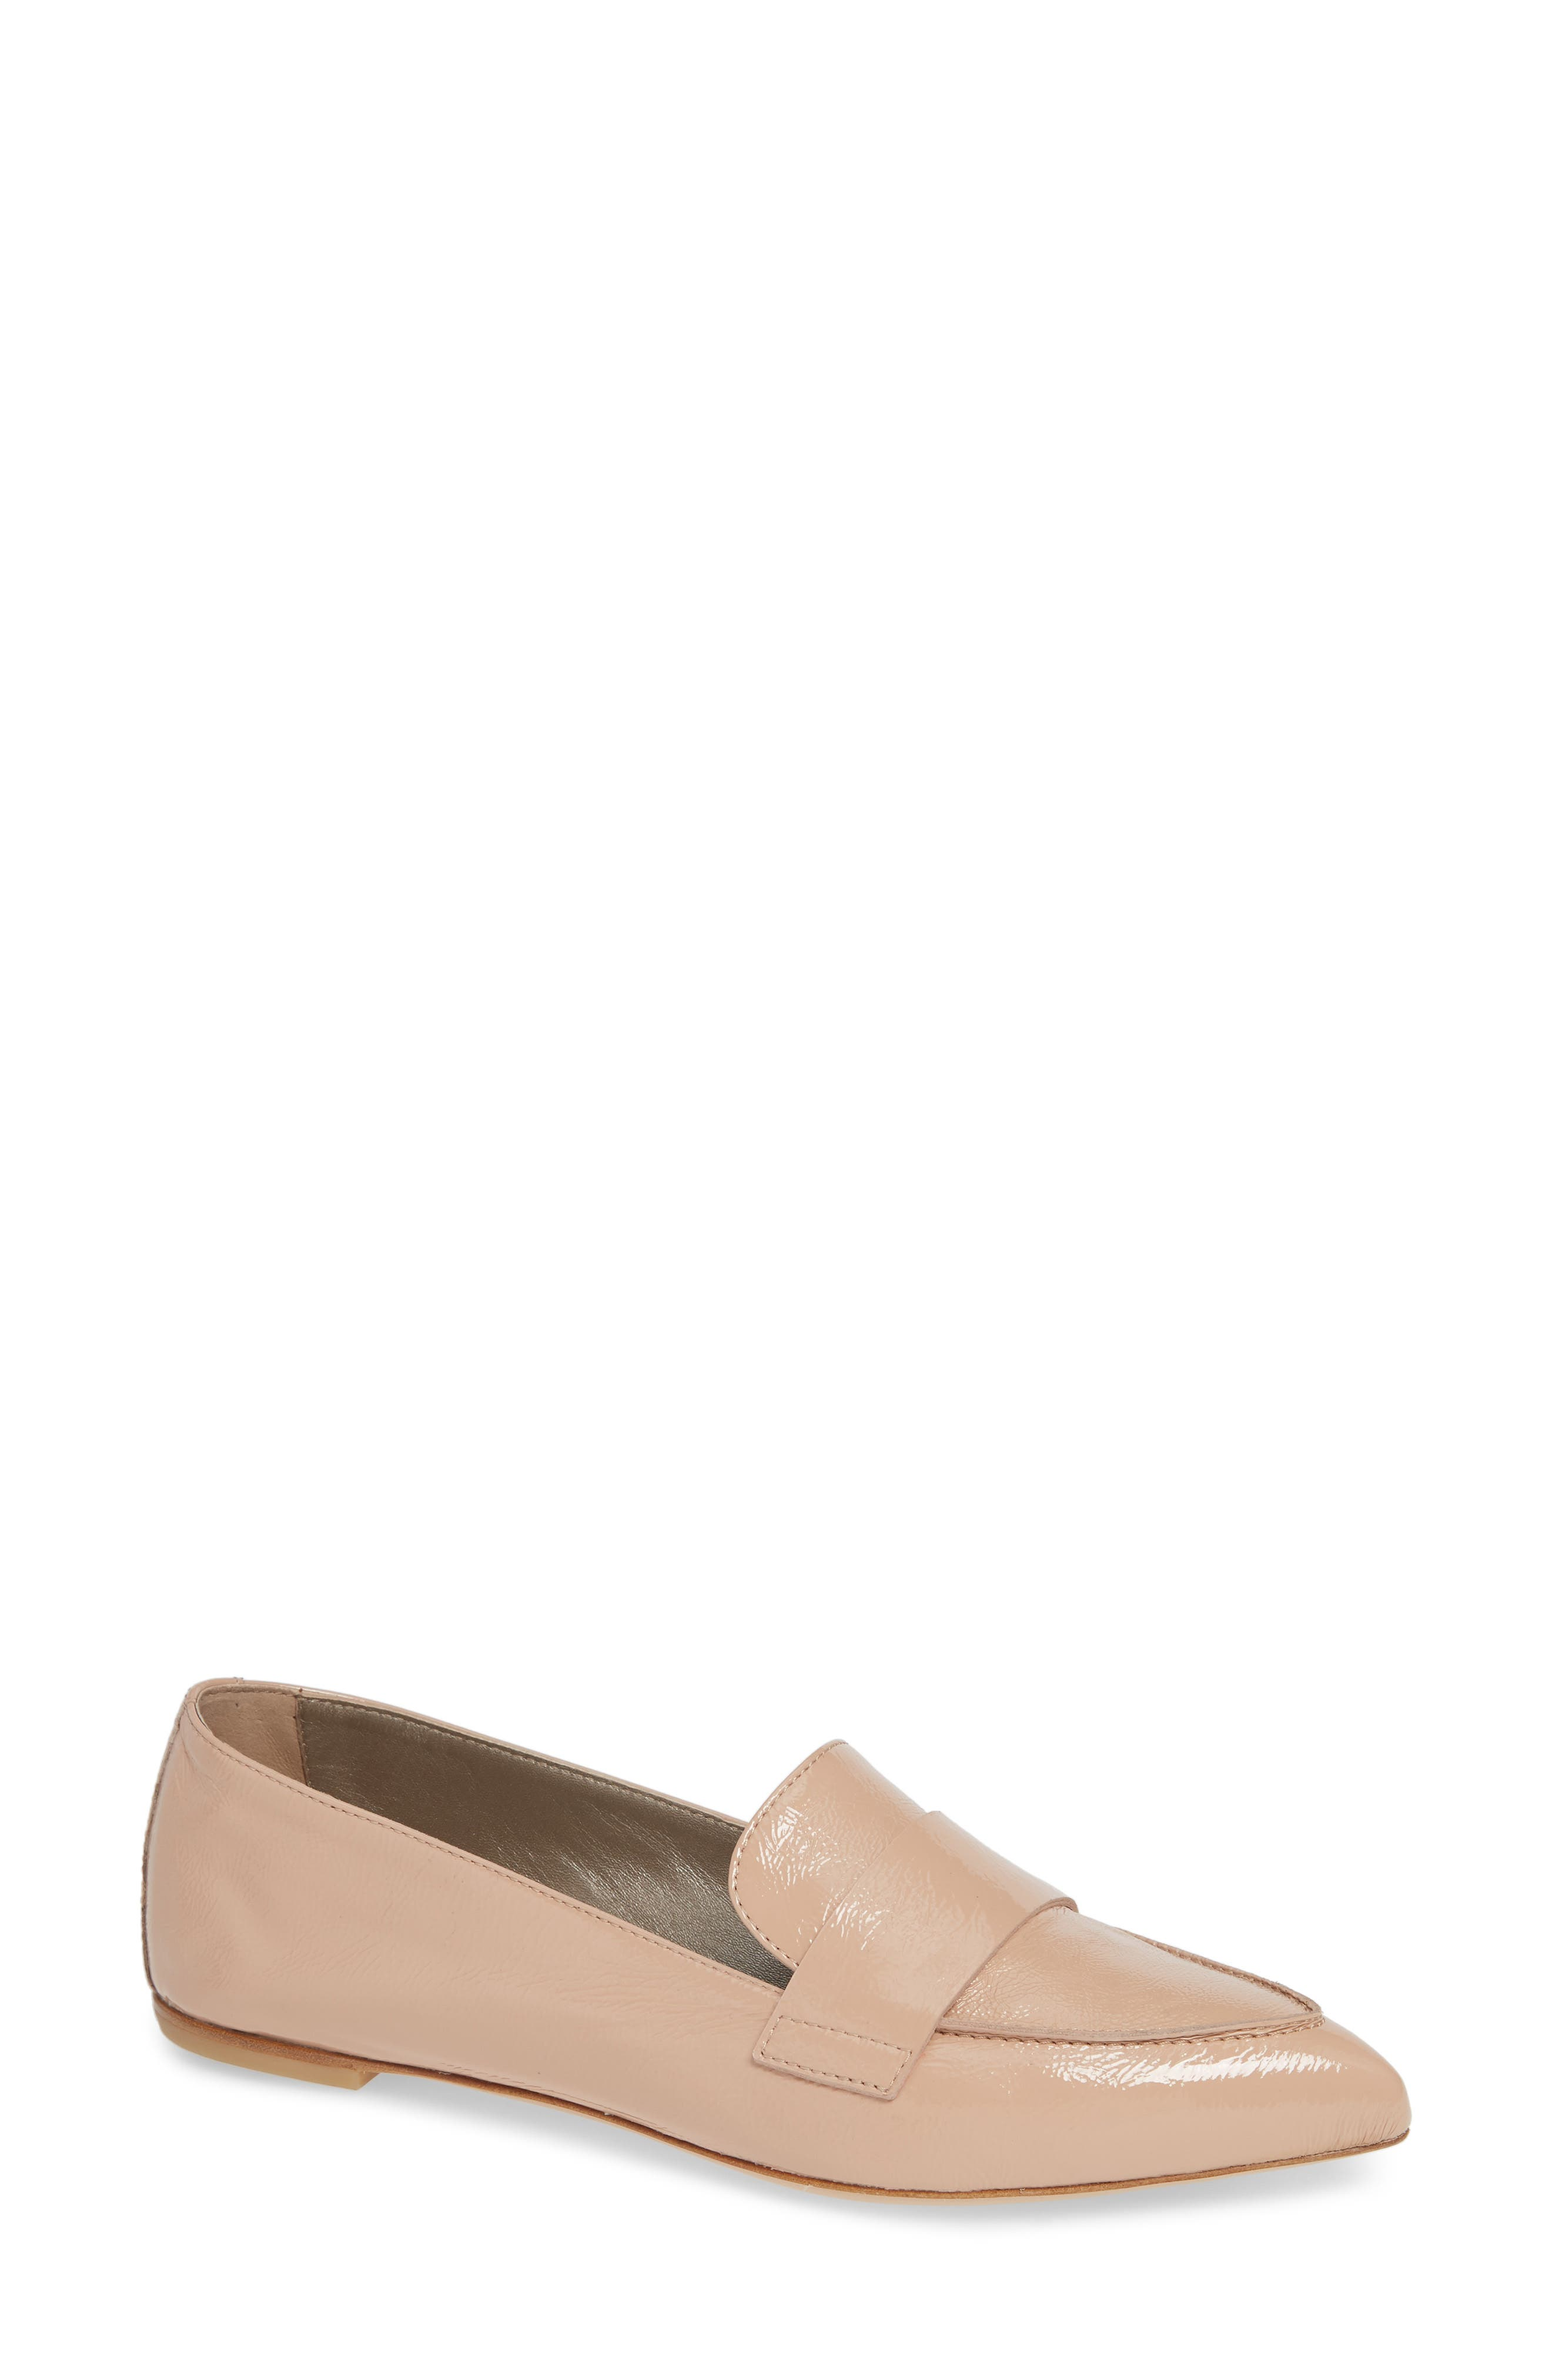 Agl Softy Pointy Toe Moccasin Loafer - Beige